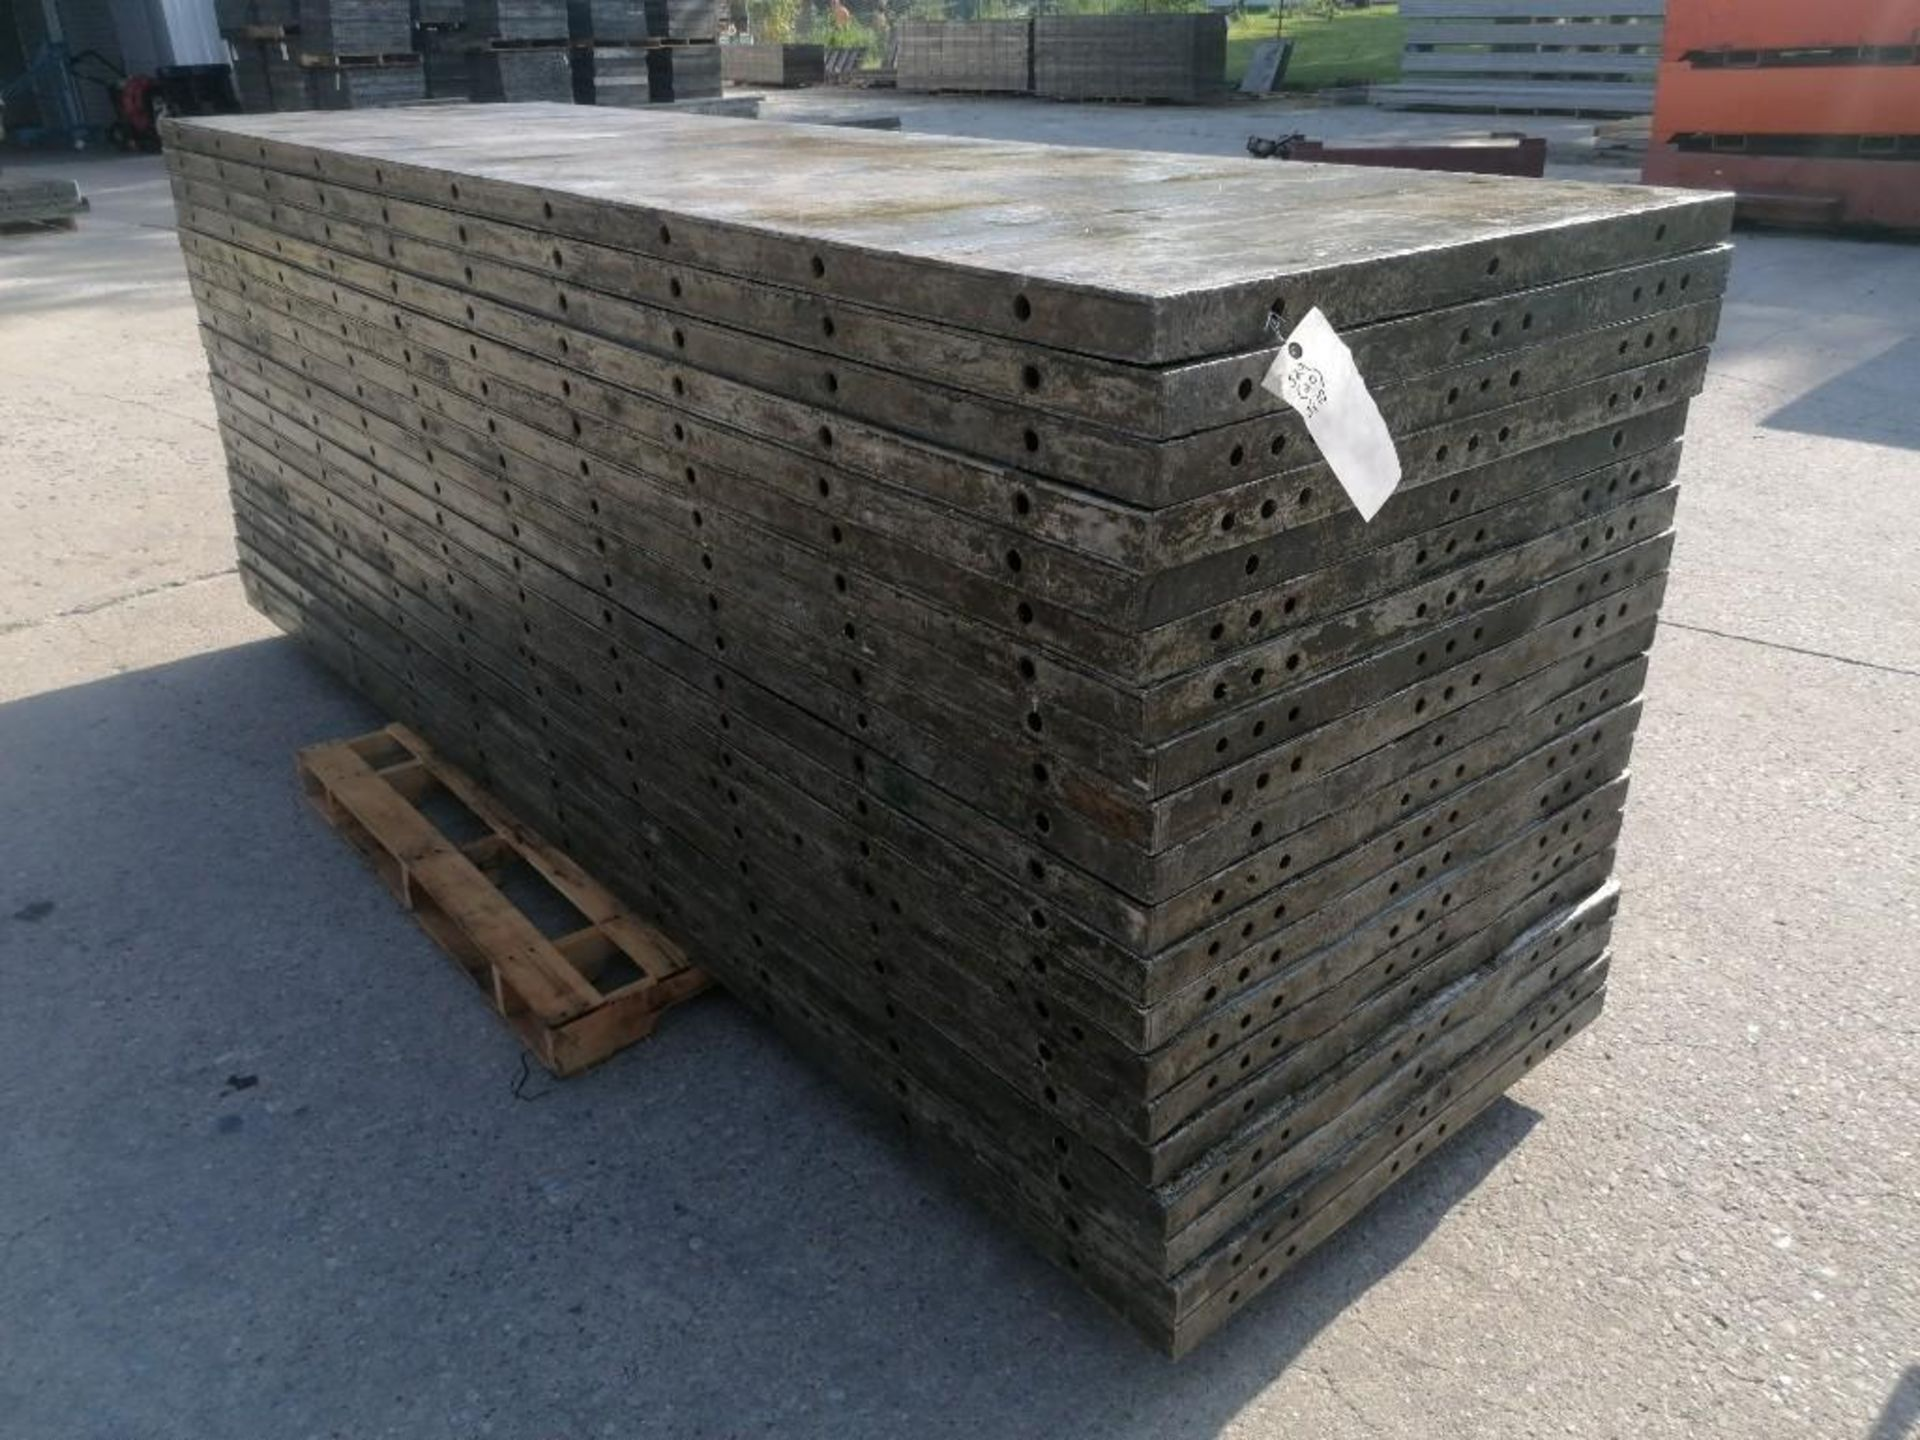 Lot 126 - (20) 3' x 10' Wall-Ties Aluminum Concrete Forms, Smooth 6-12 Hole Pattern. Located at 301 E Henry